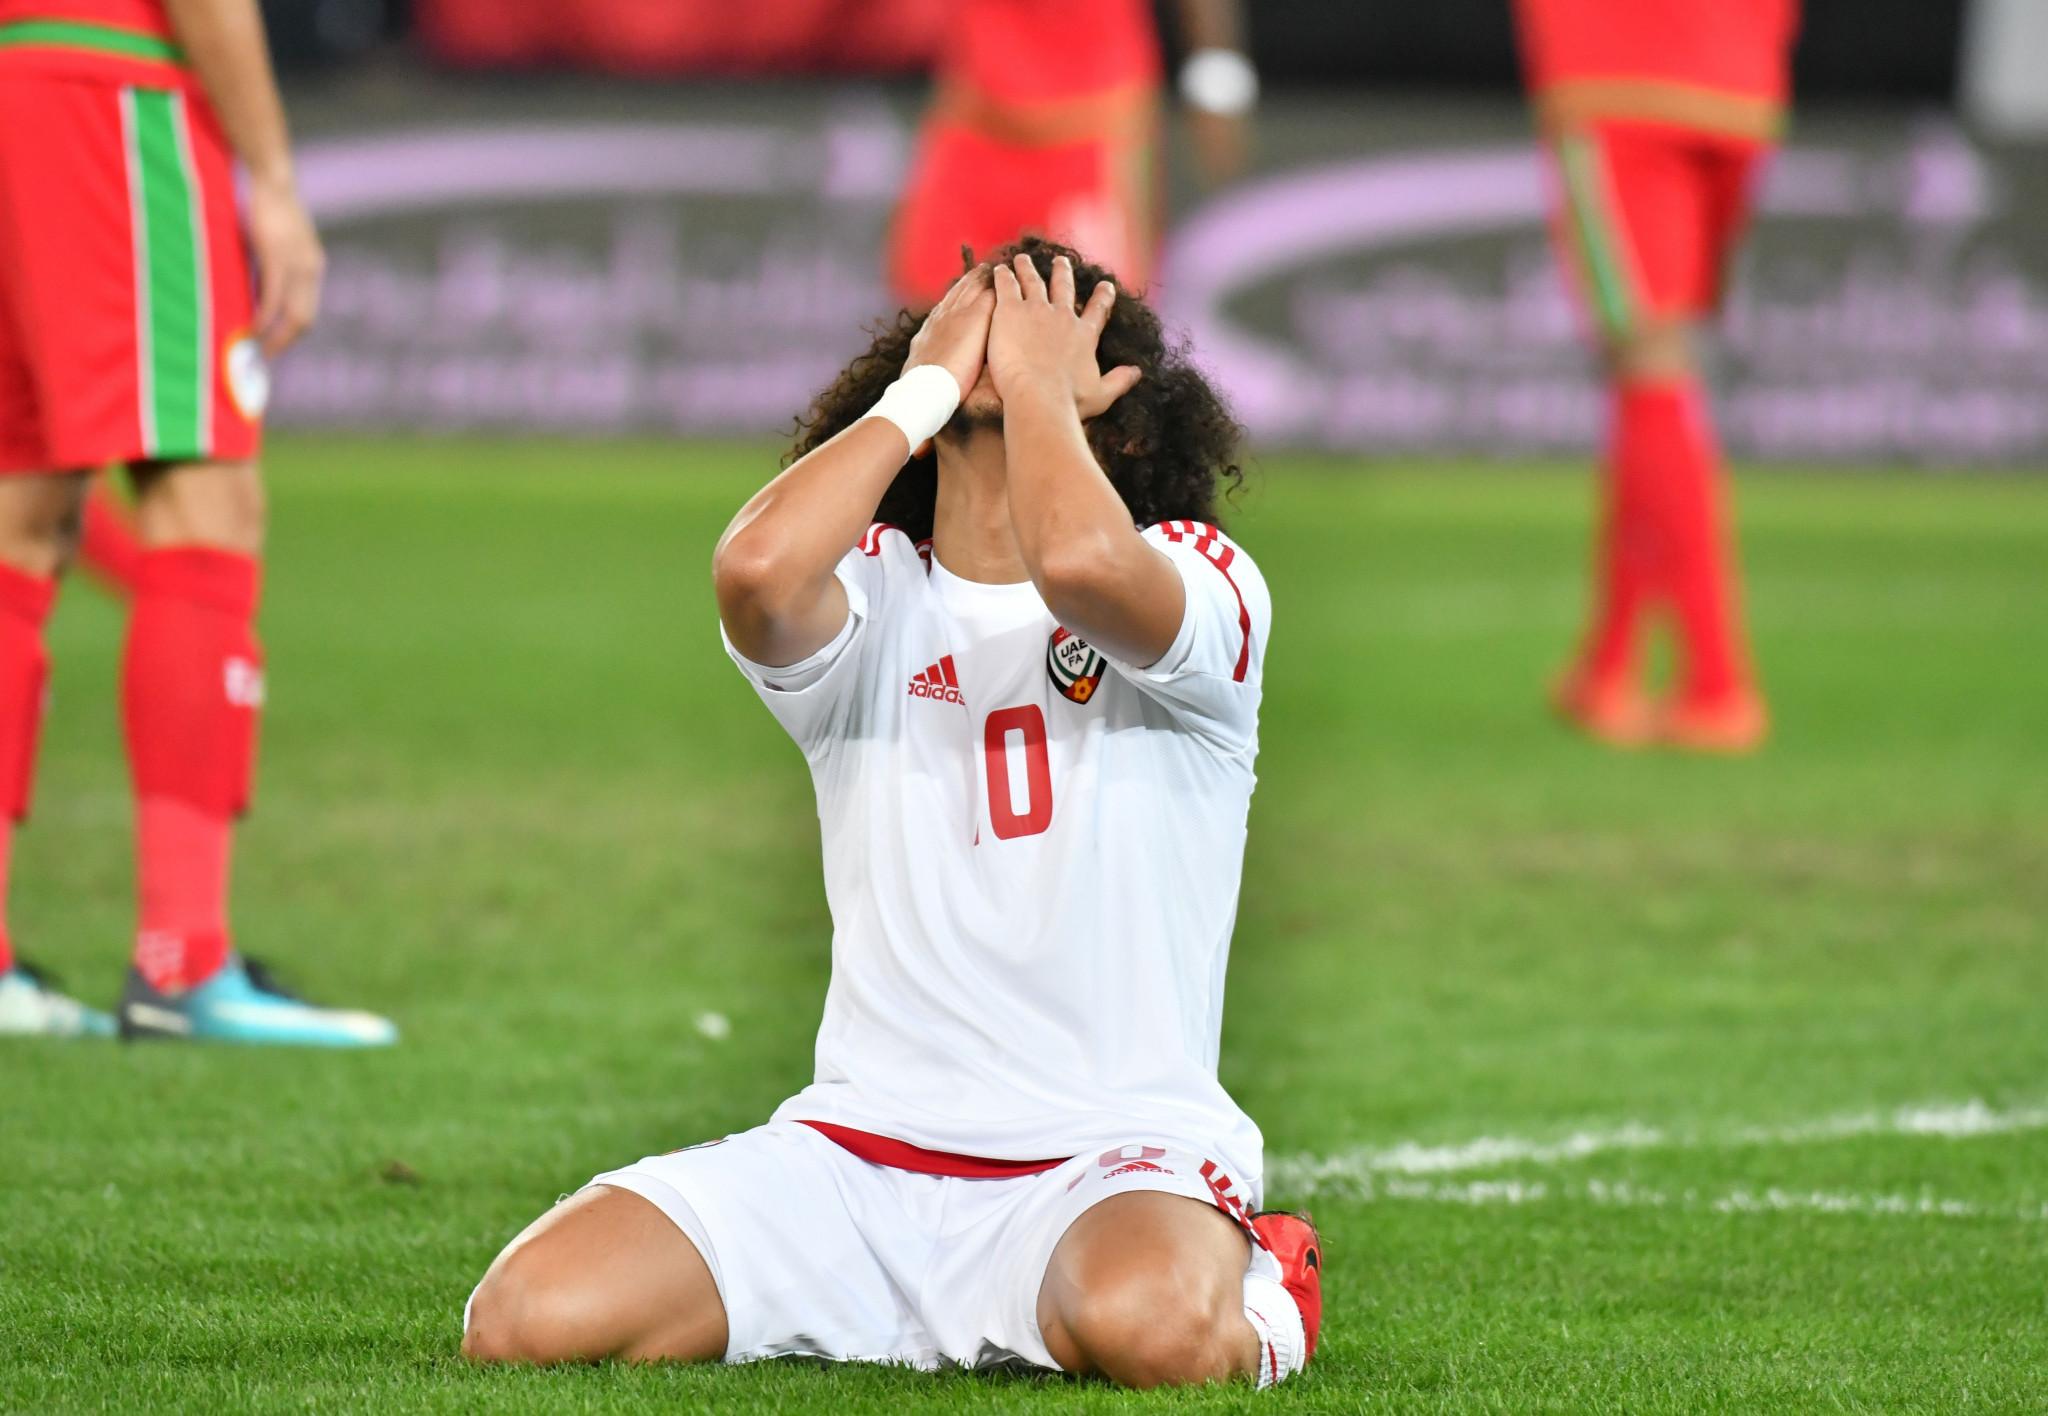 Omani fans injured as stadium barrier collapses at Gulf Cup final